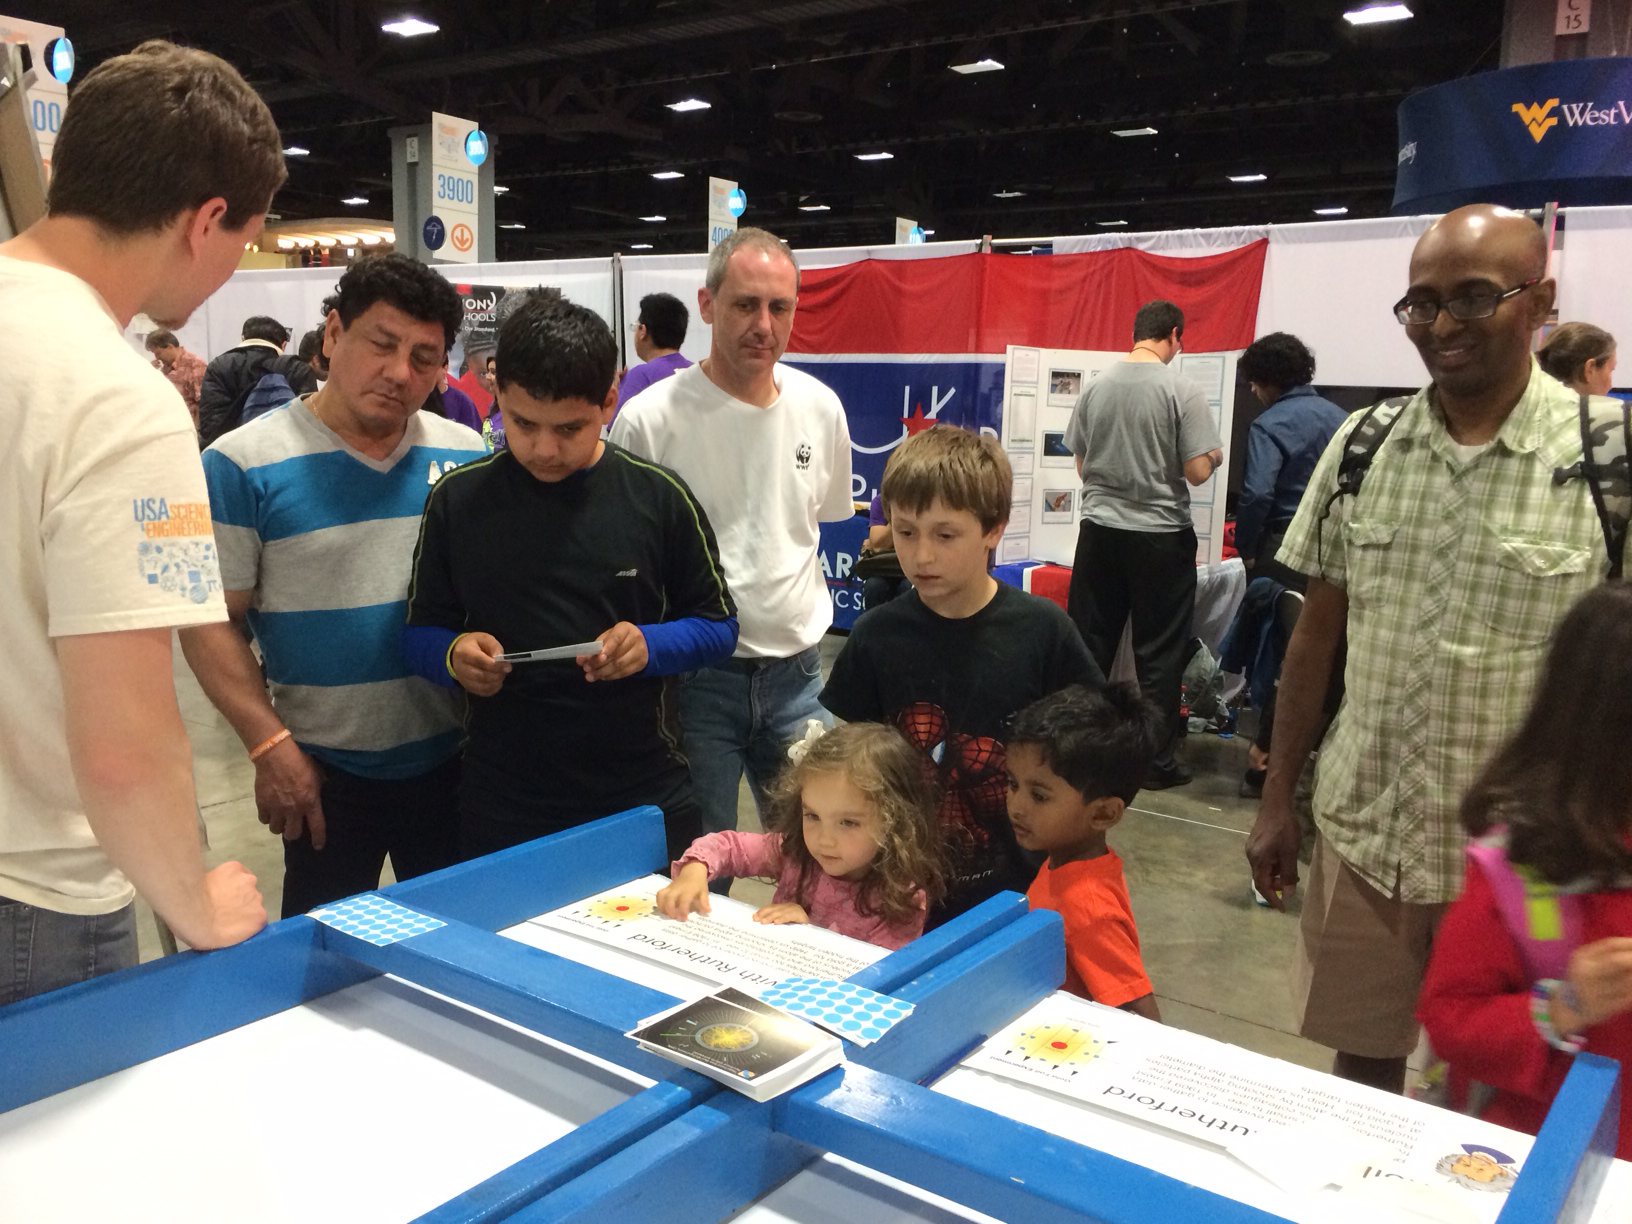 Last month Fermilab participated in the USA Science and Engineering Festival, the largest STEM education event of its kind in the United States. More than 750 organizations participated in the Washington, DC, festival. Here, kids at the Fermilab booth play Rolling for Rutherford. Photo: Marge Bardeen, WDRS